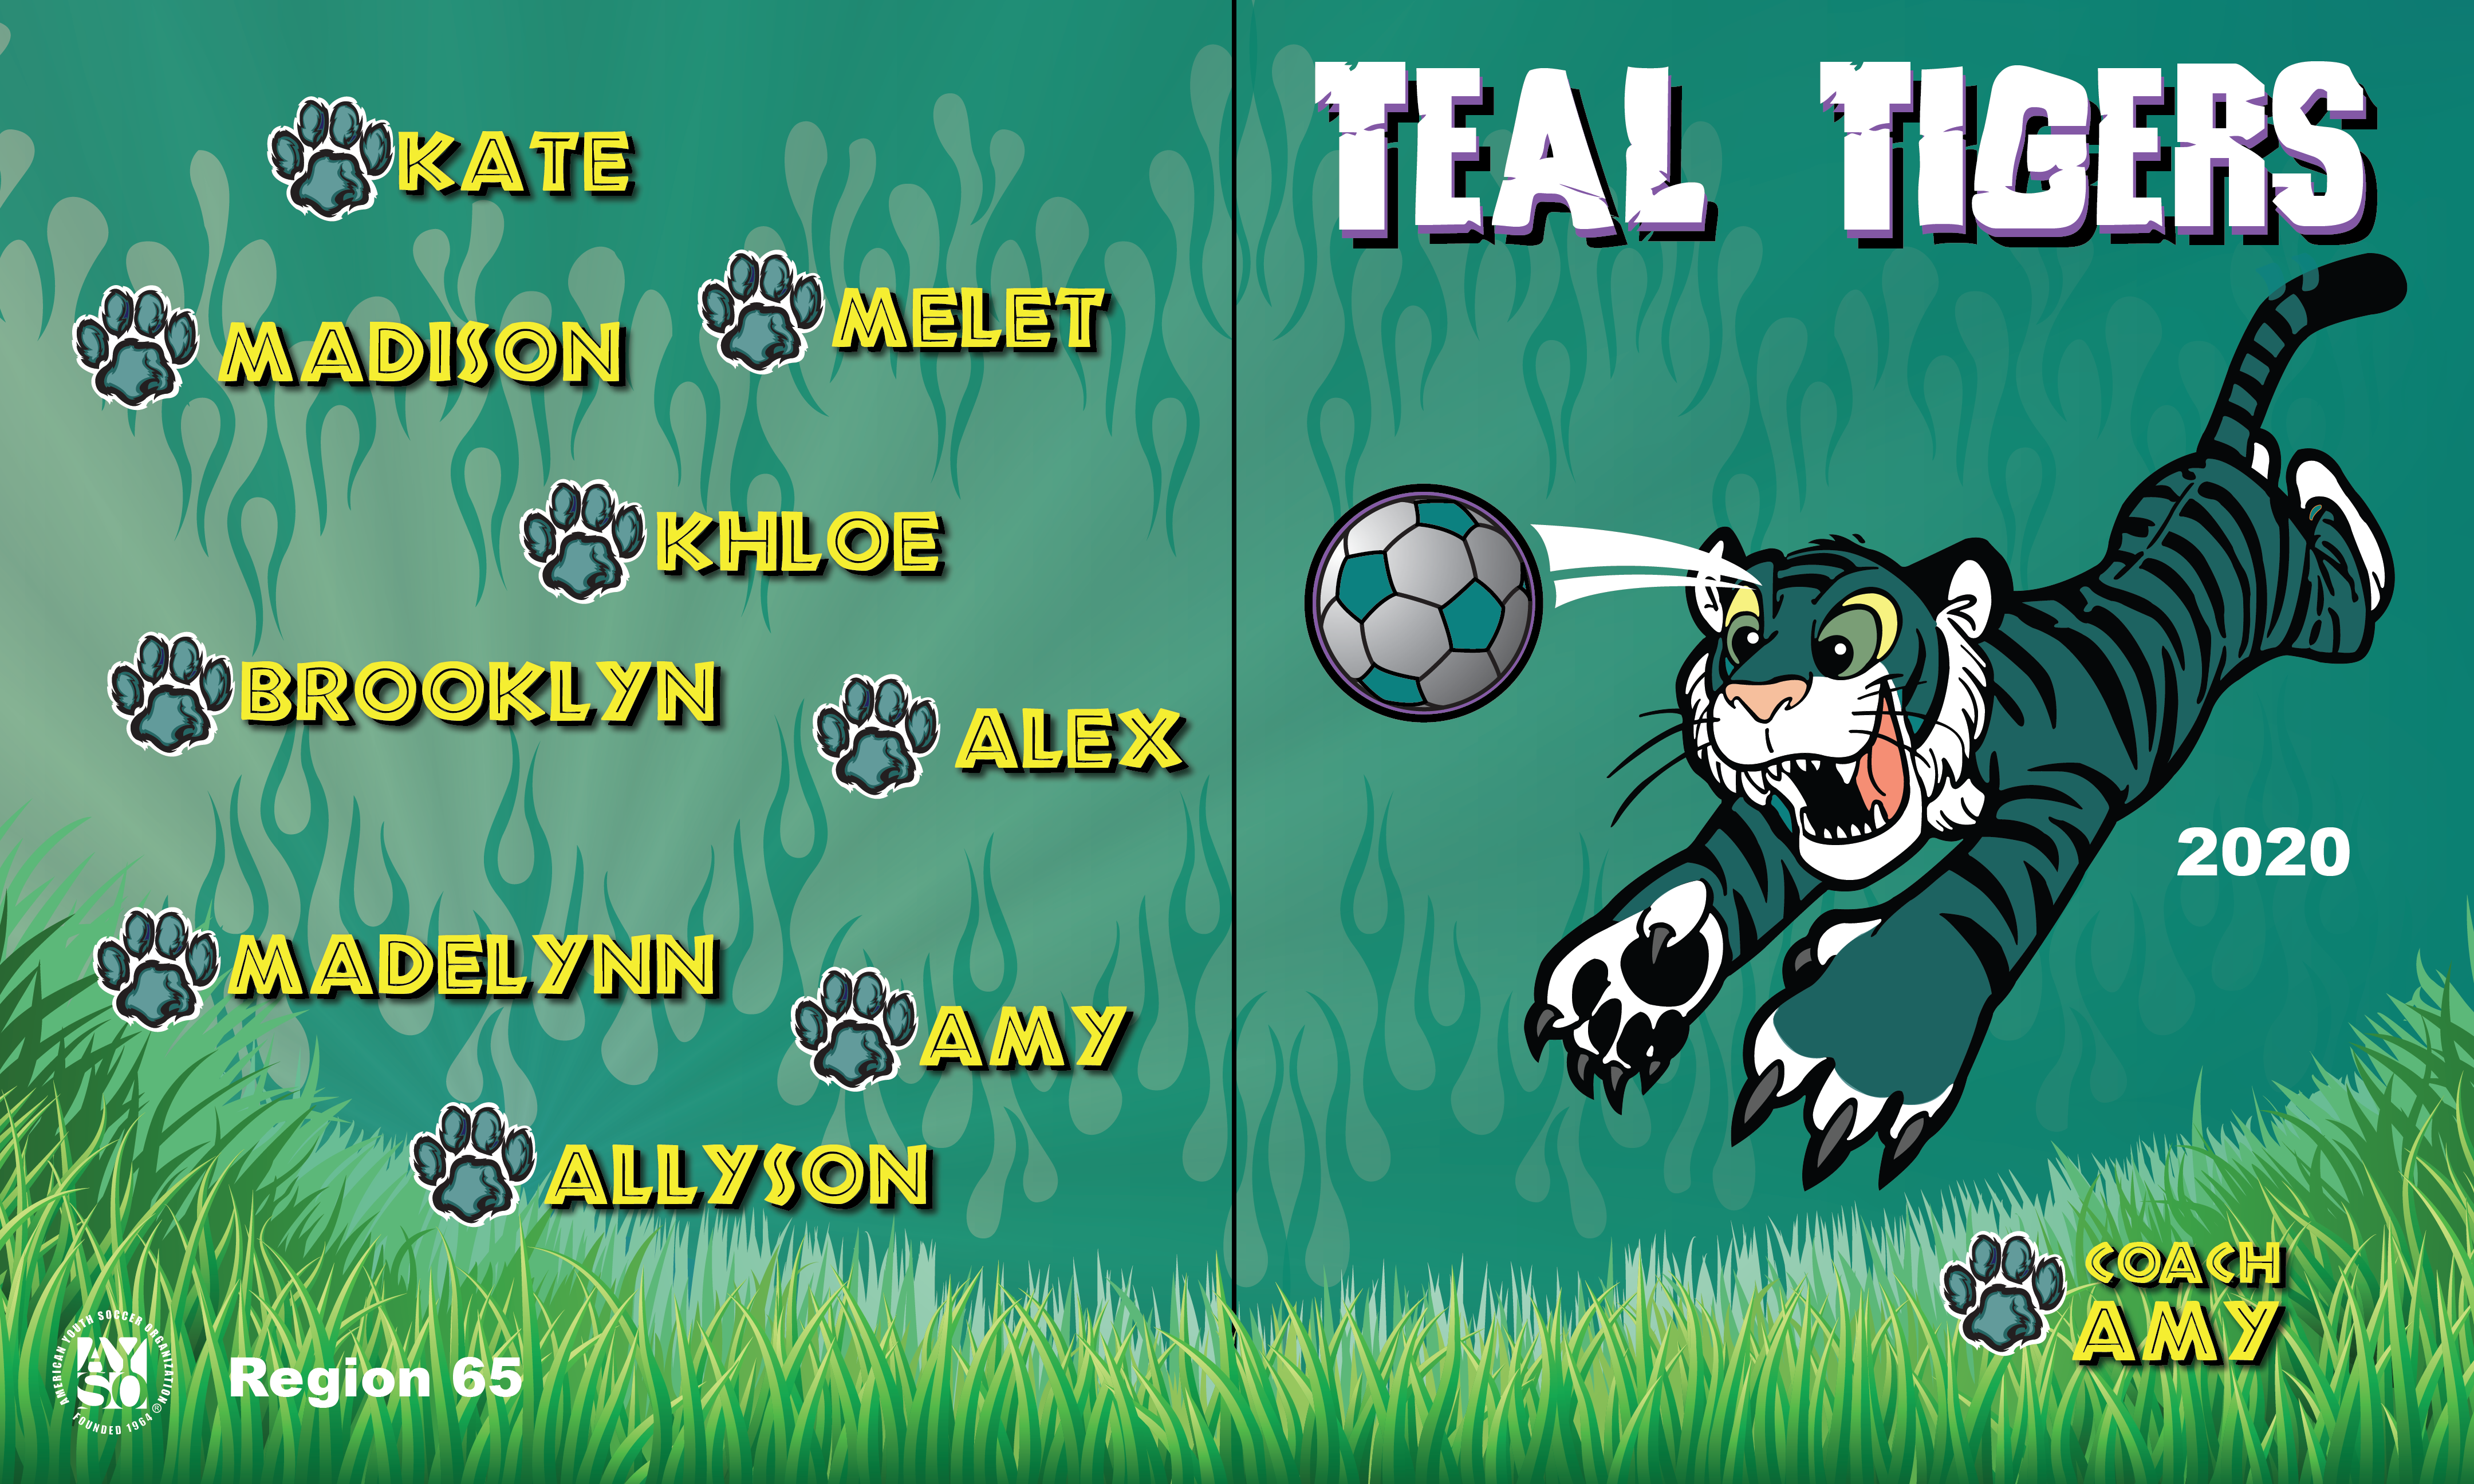 B2653 Teal Tigers 3x5 Banner